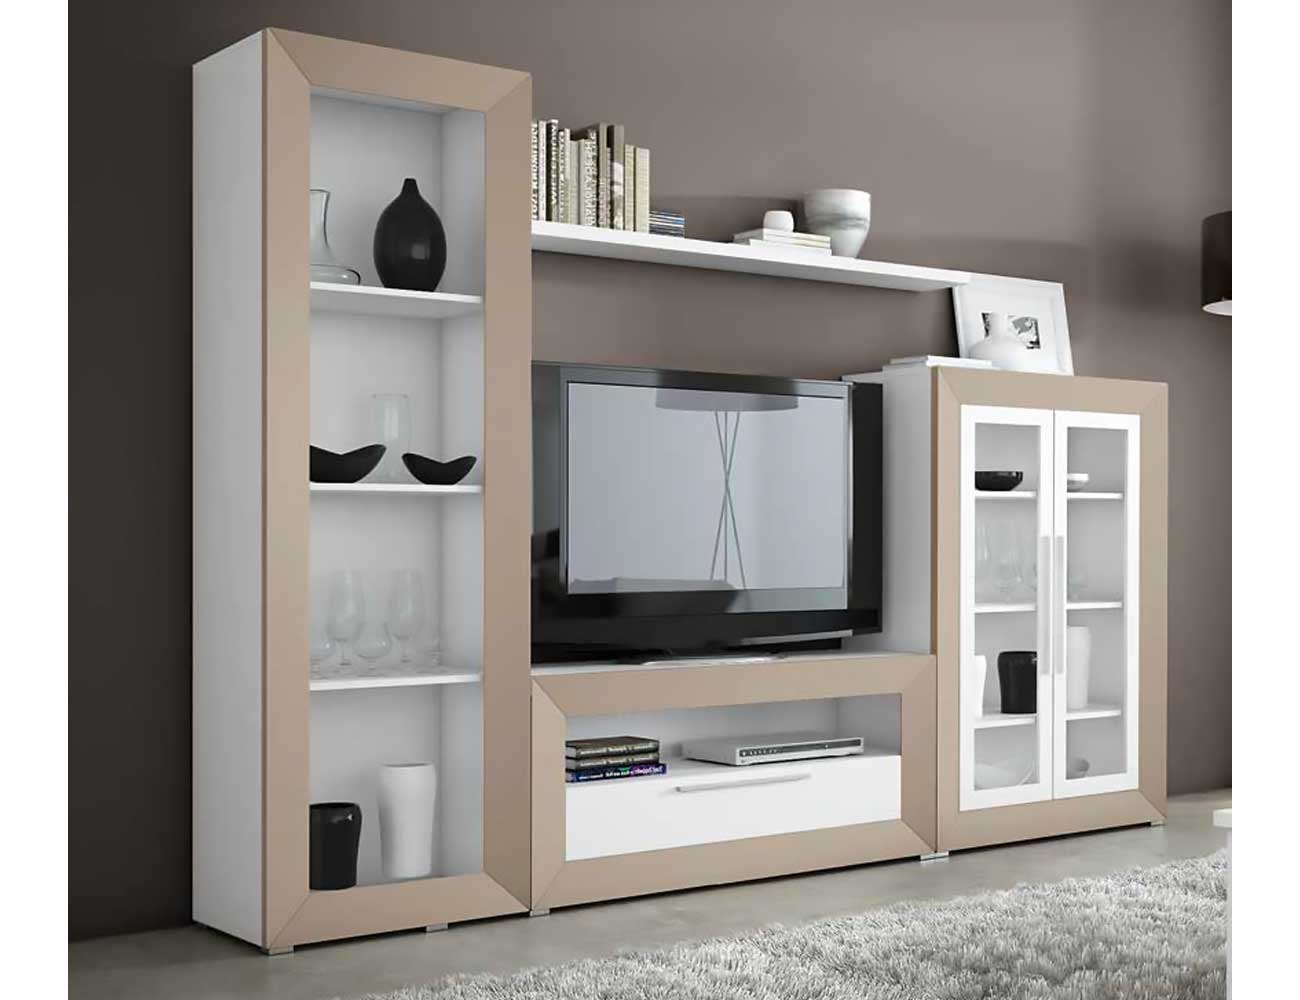 Mueble de sal n moderno en blanco con vis n 2432 for Mueble salon moderno blanco